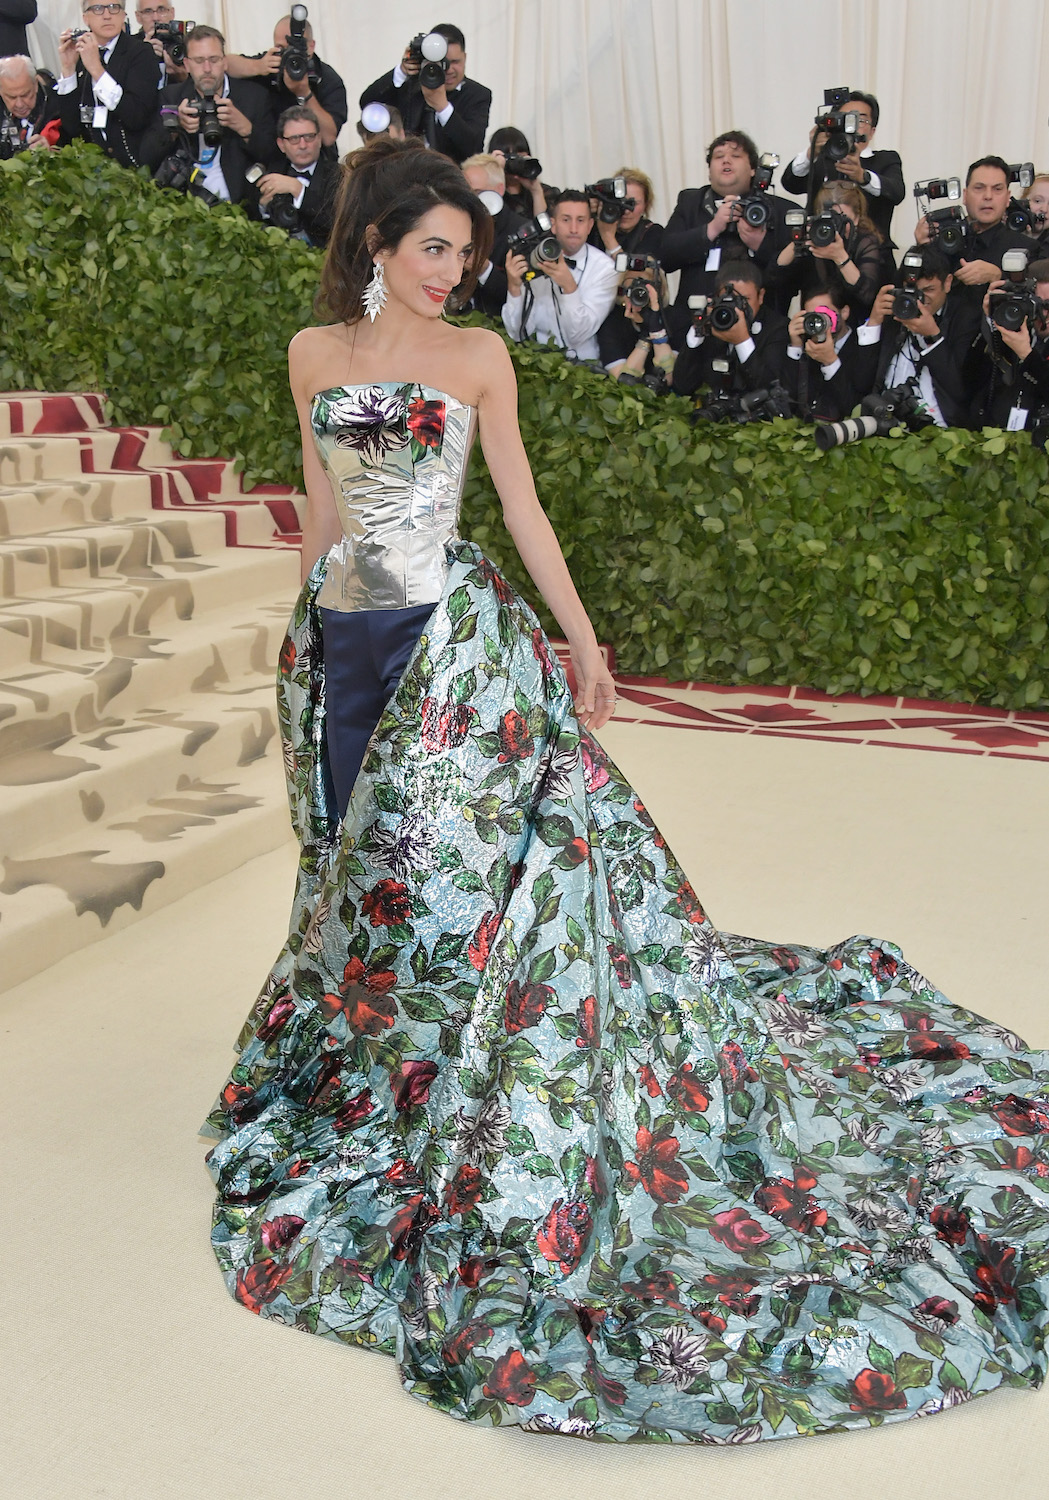 NEW YORK, NY - MAY 07: Amal Clooney attends the Heavenly Bodies: Fashion & The Catholic Imagination Costume Institute Gala at The Metropolitan Museum of Art on May 7, 2018 in New York City. (Photo by Neilson Barnard/Getty Images)